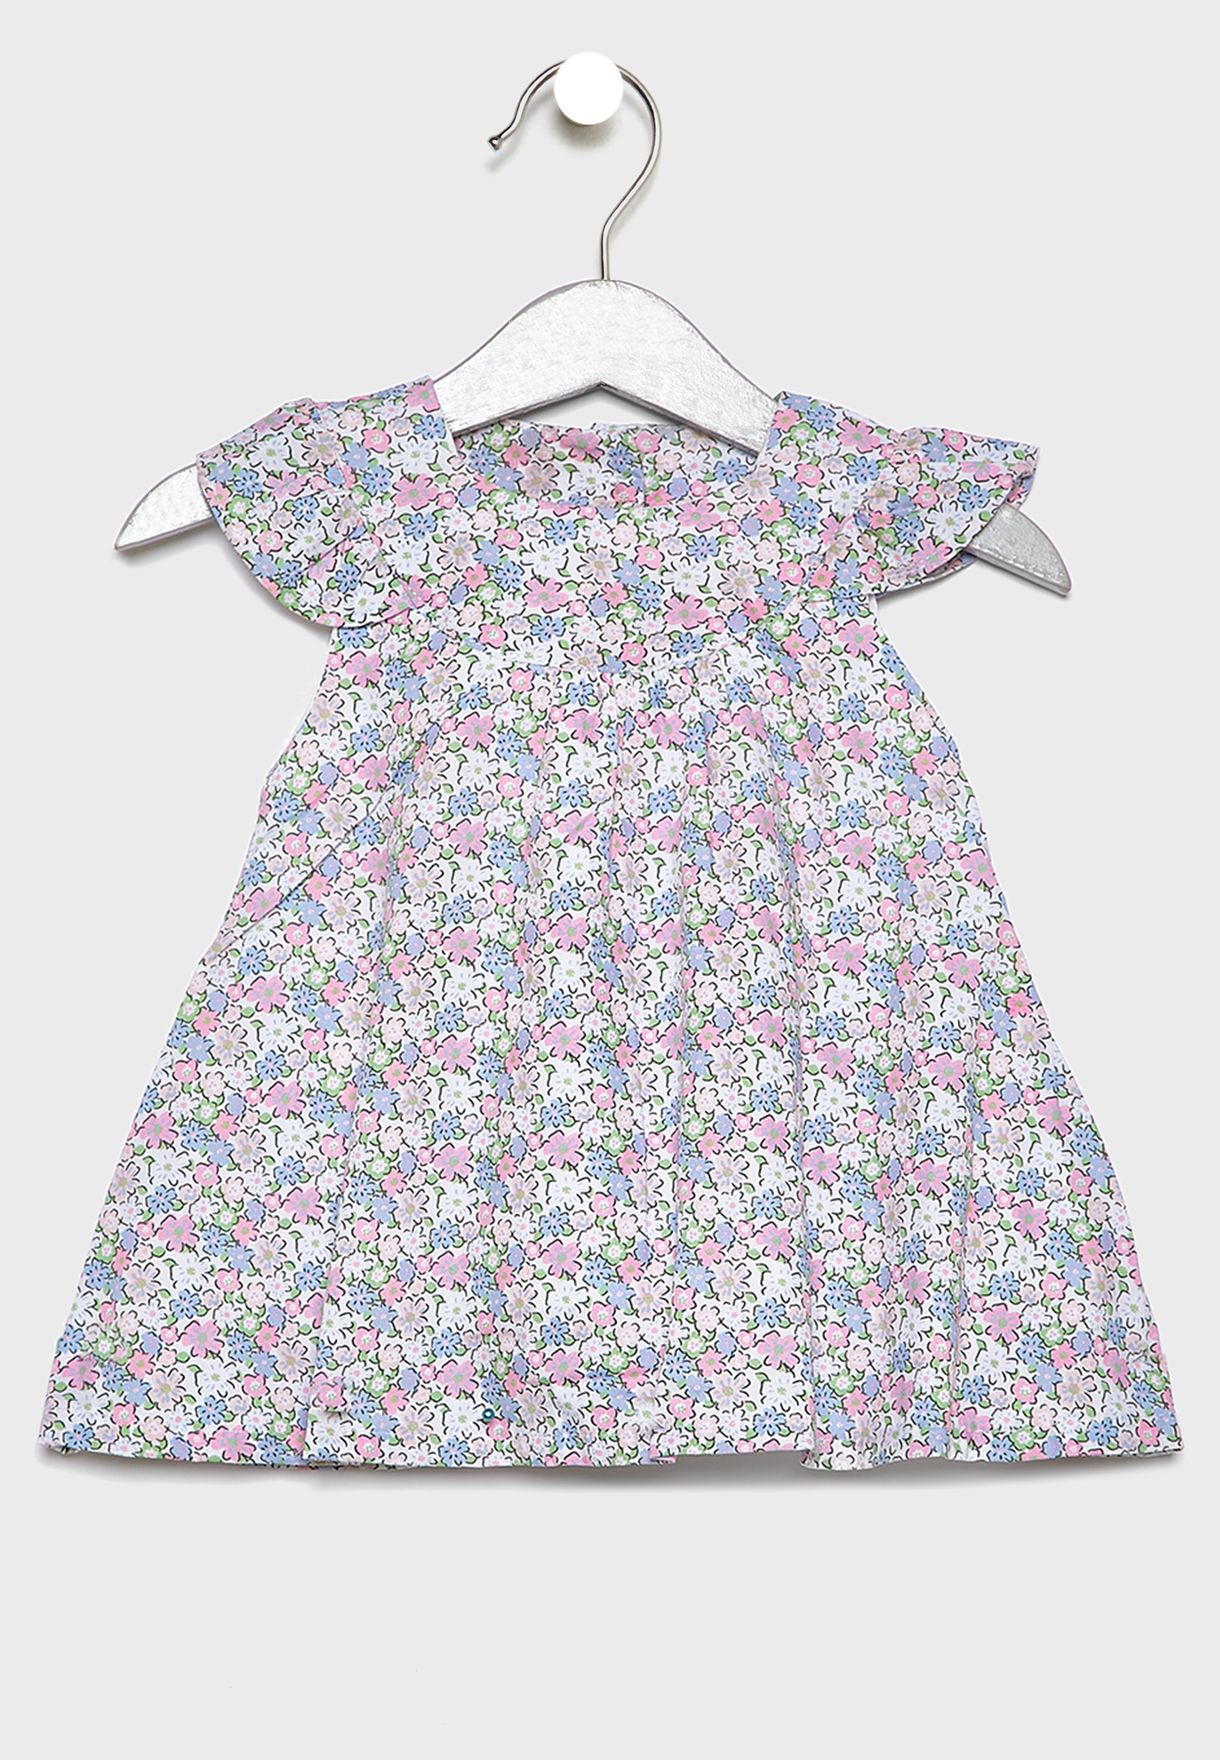 Infant Pleated Dress